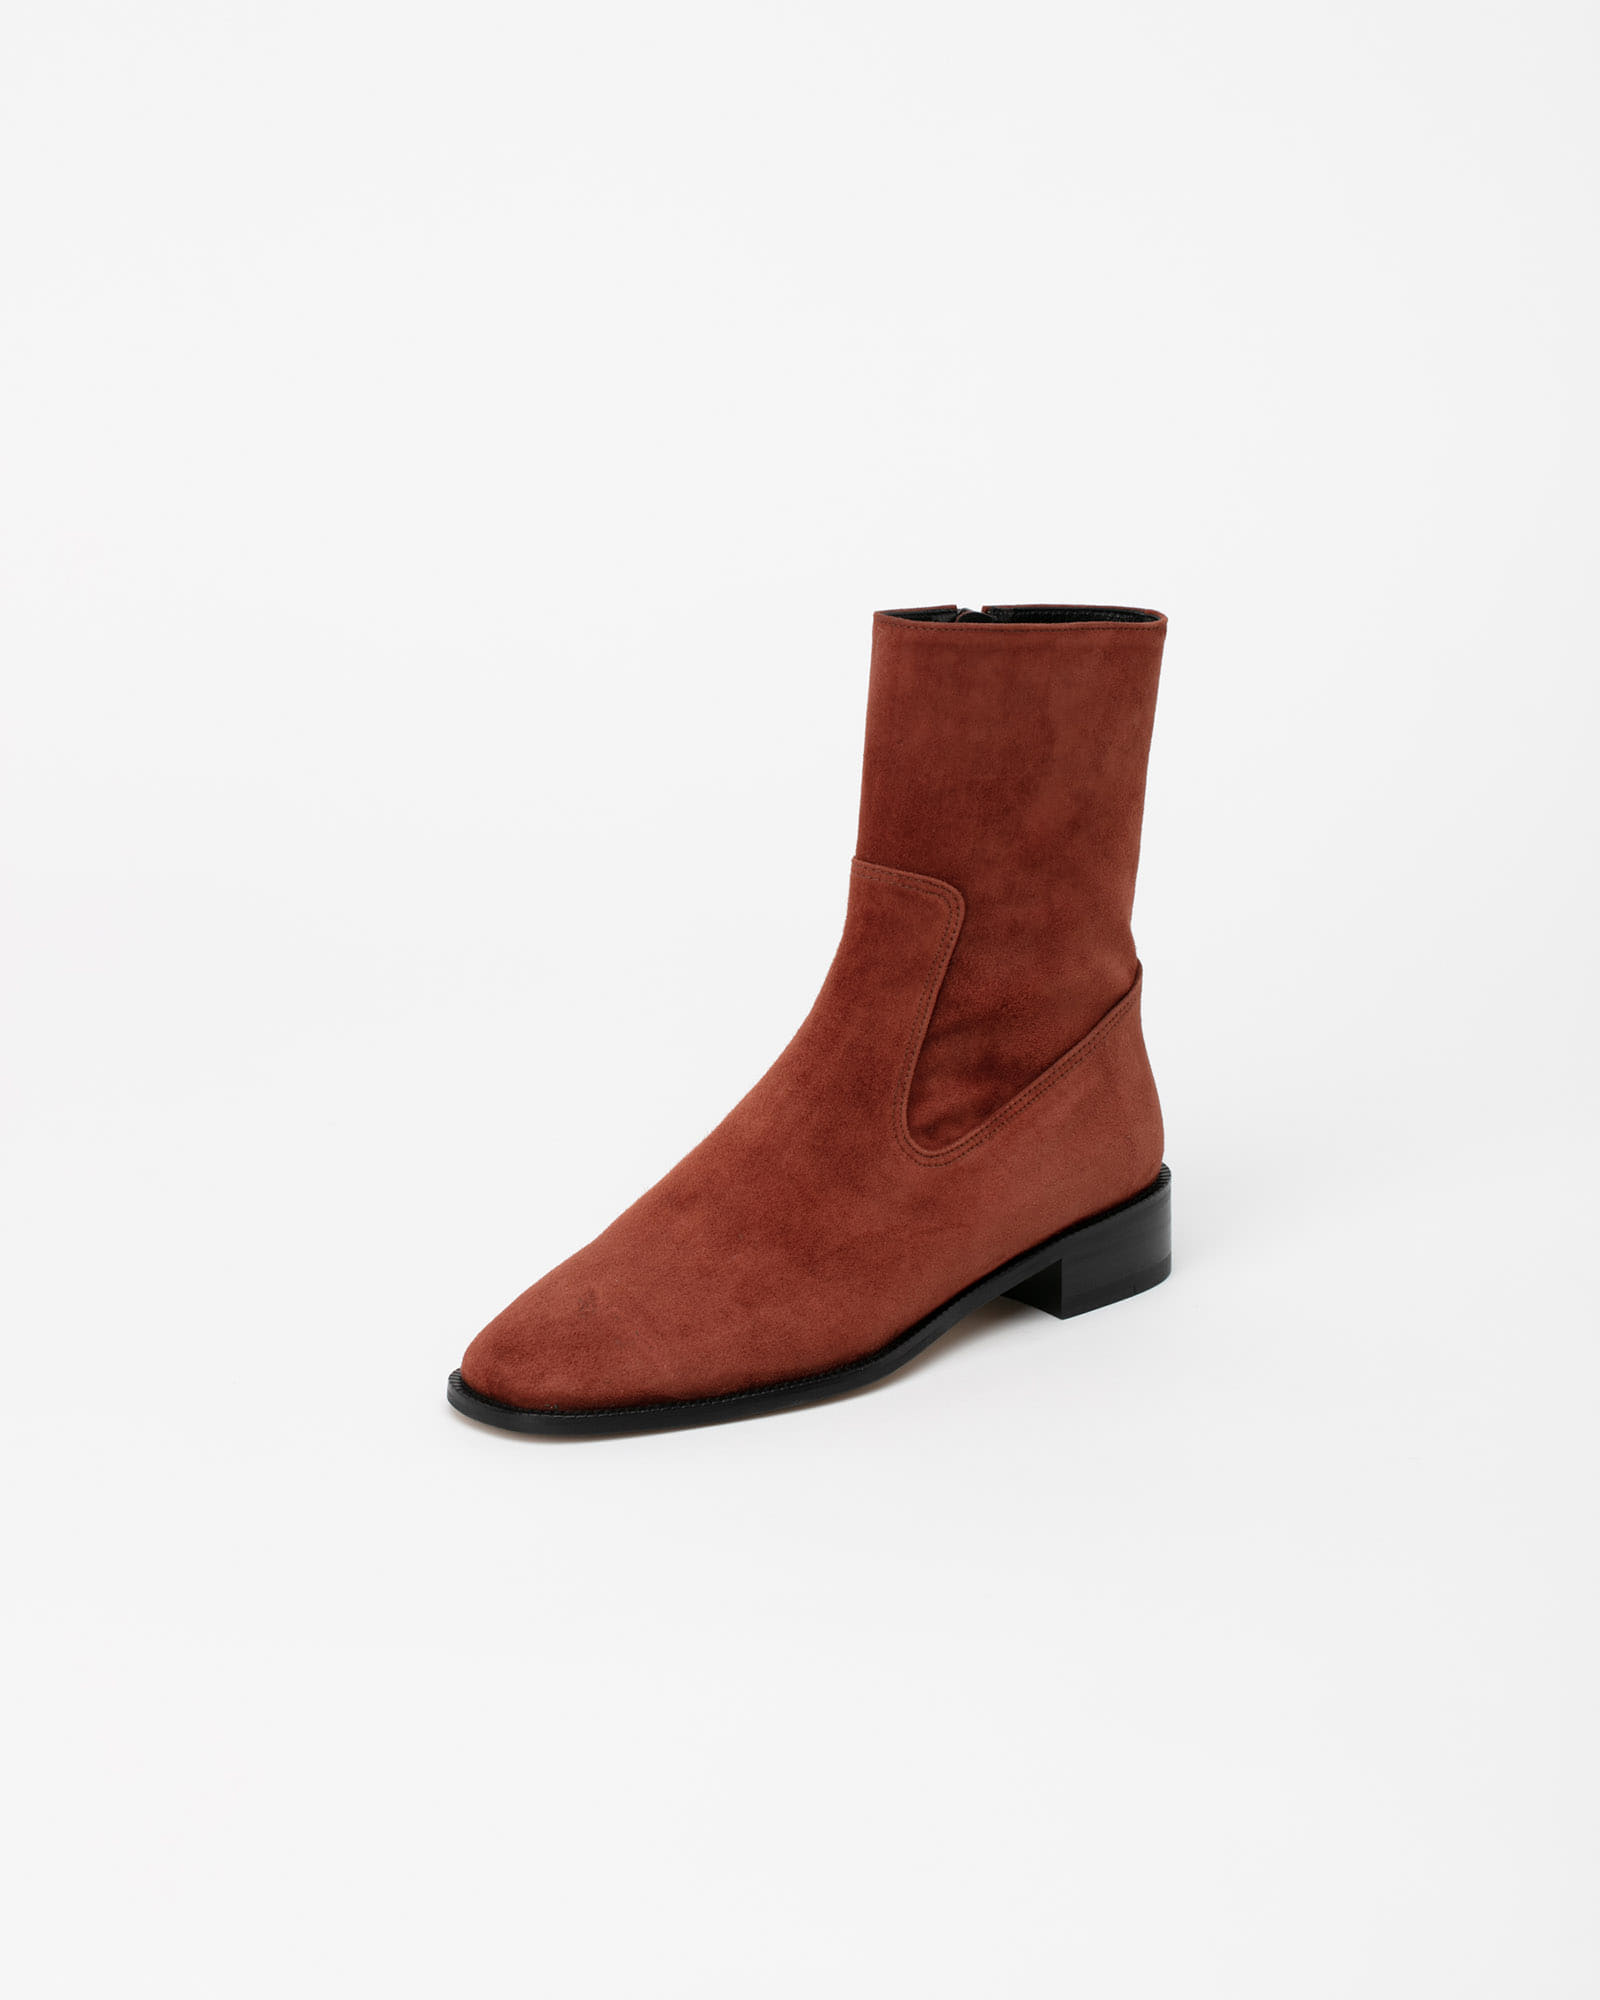 Corbeau Flat Boots in Chestnut Brown Suede